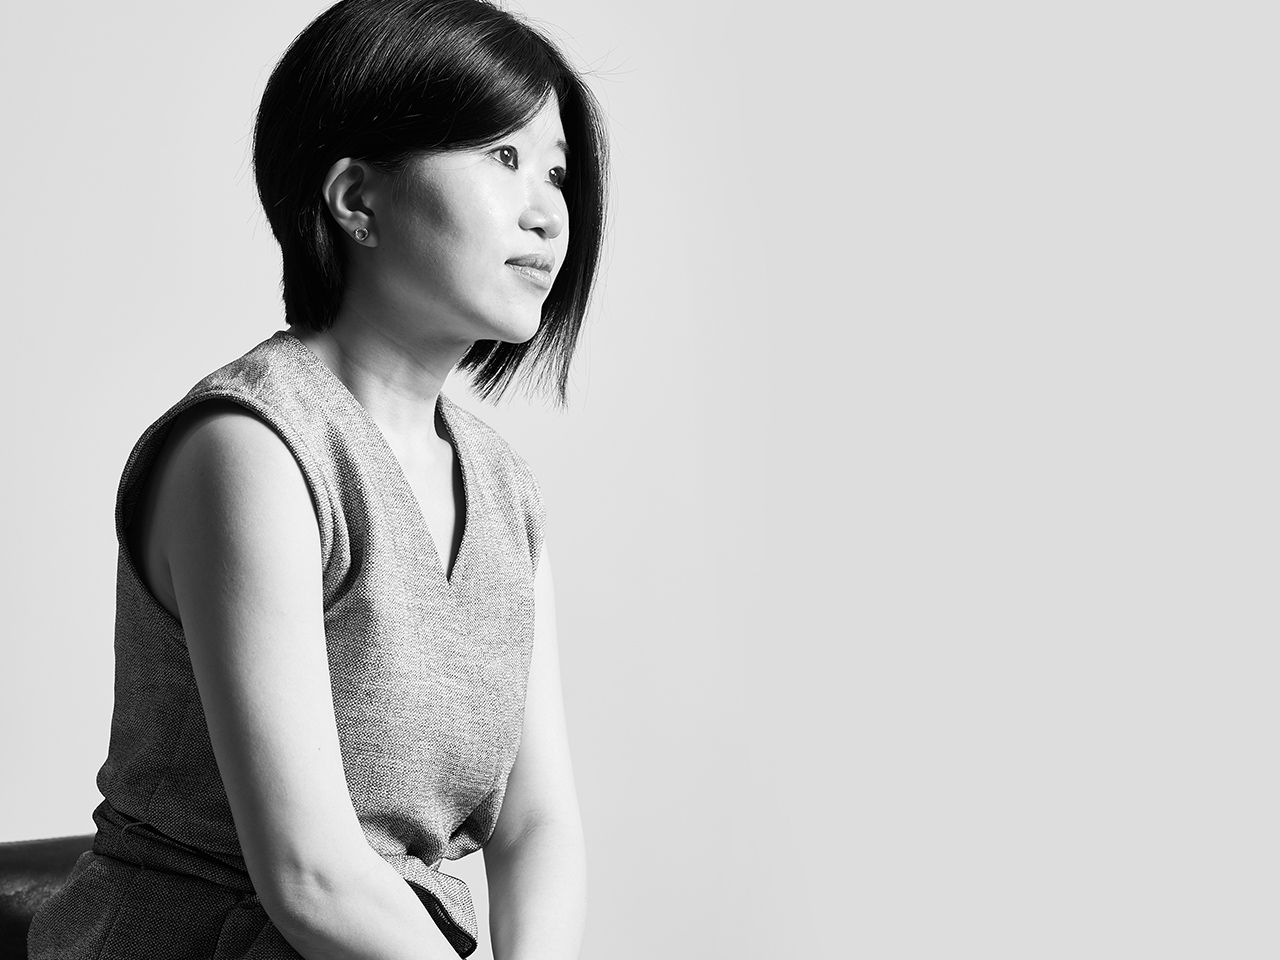 KSK Group CEO Joanne Kua On Building A Successful Family Business In Asia That Can Last Generations